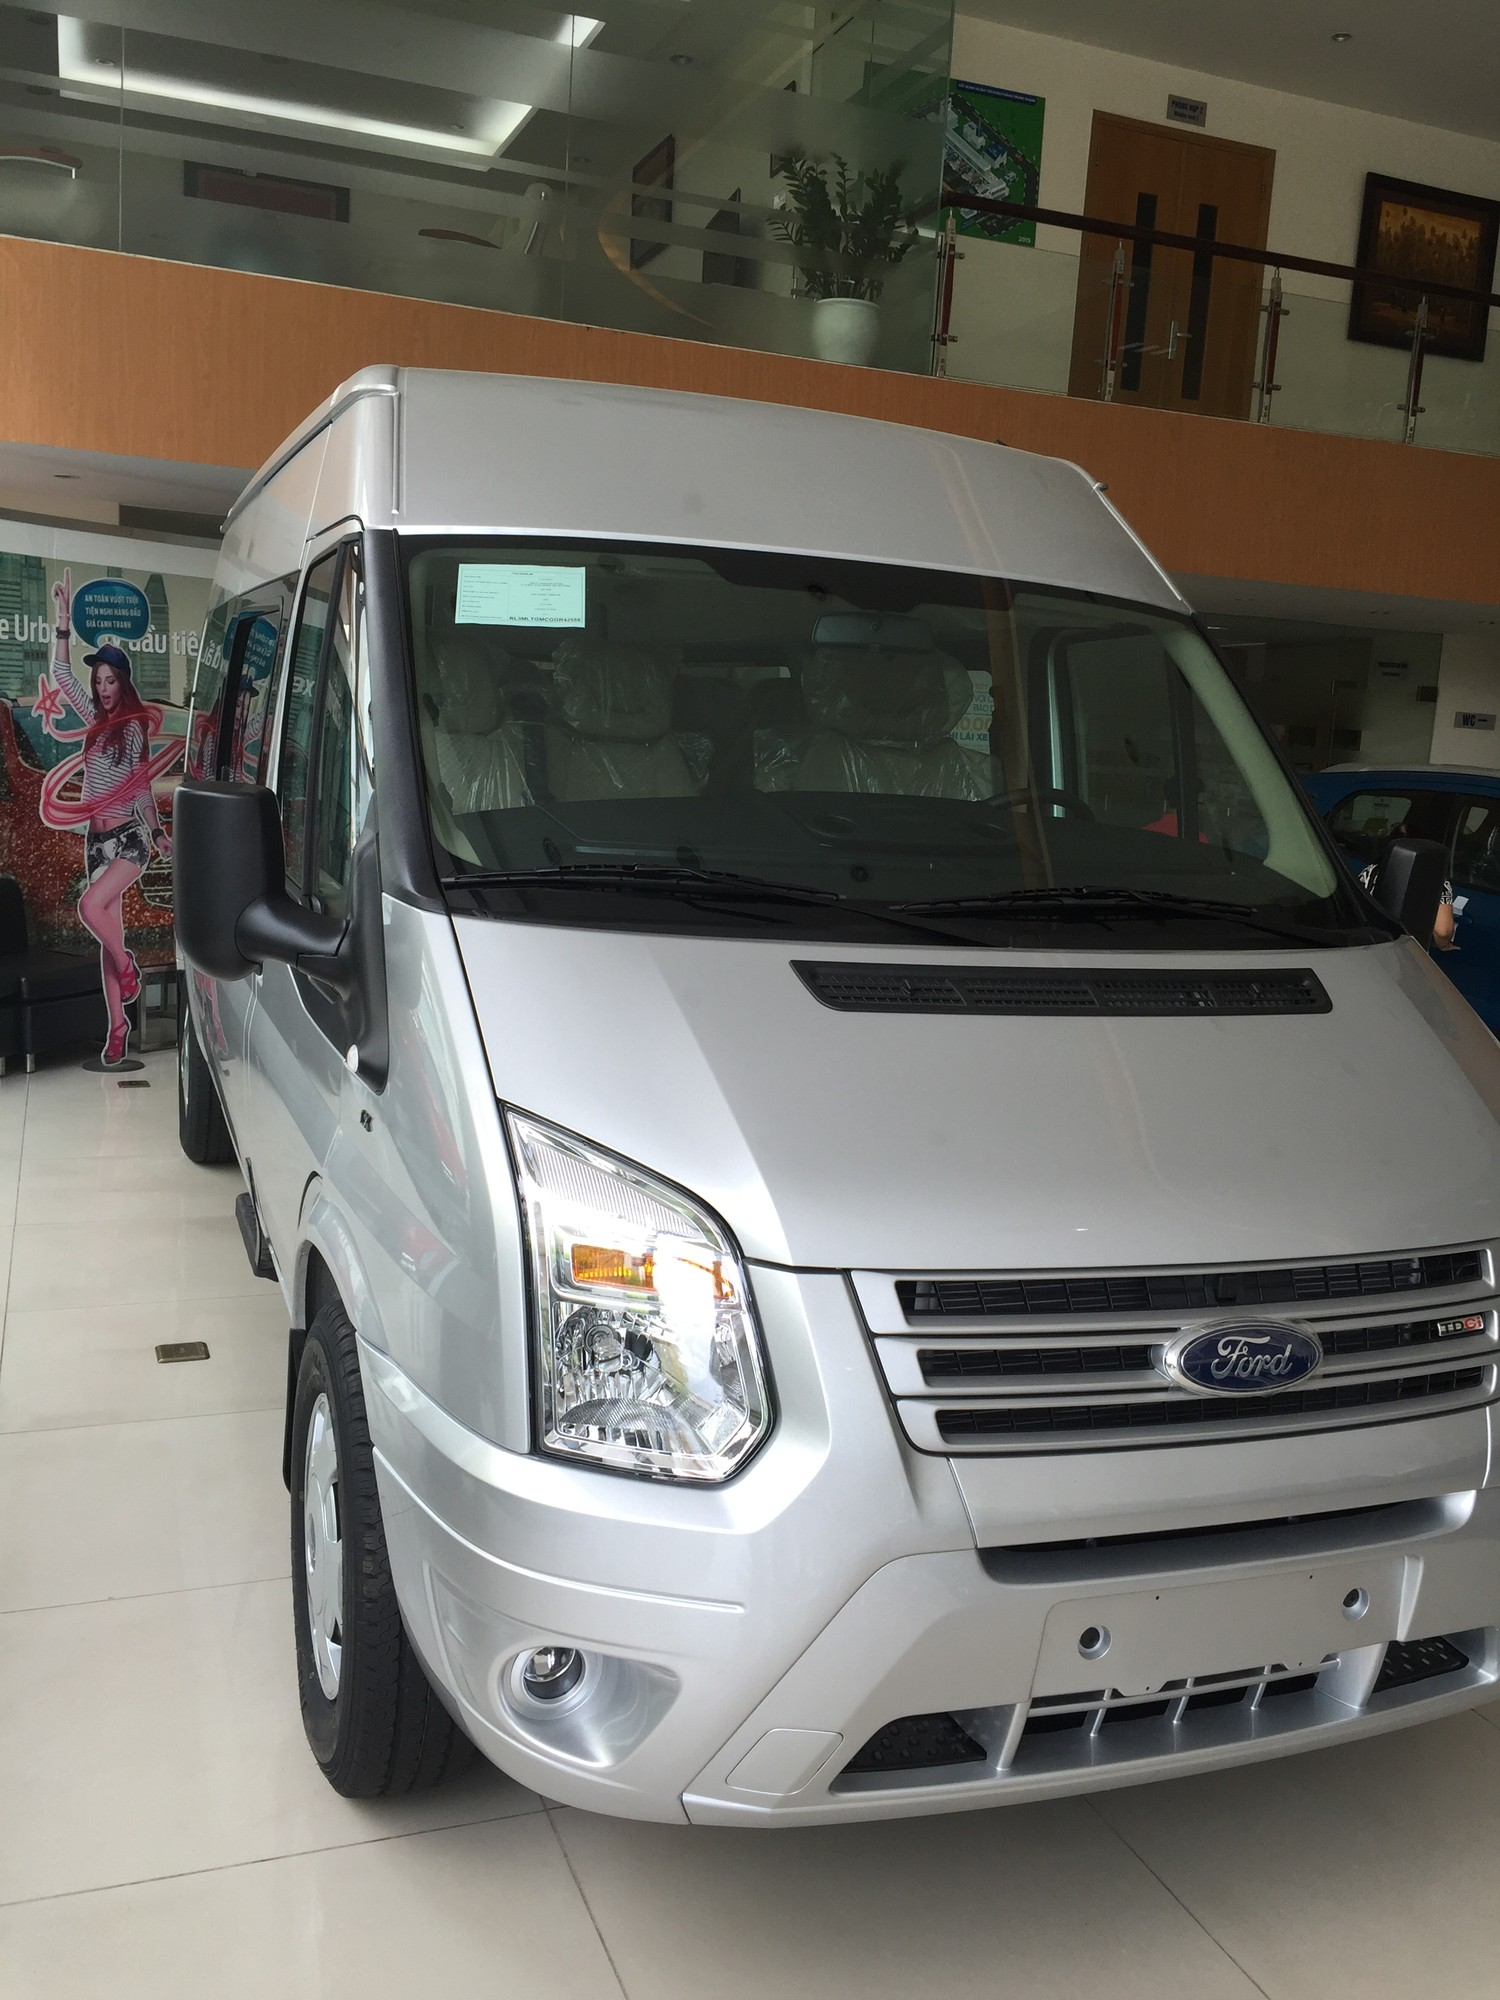 Ford Ranger, Ford Transit, Ford Ecosport, Fiesta, Focus giao ngay Ảnh số 42770435